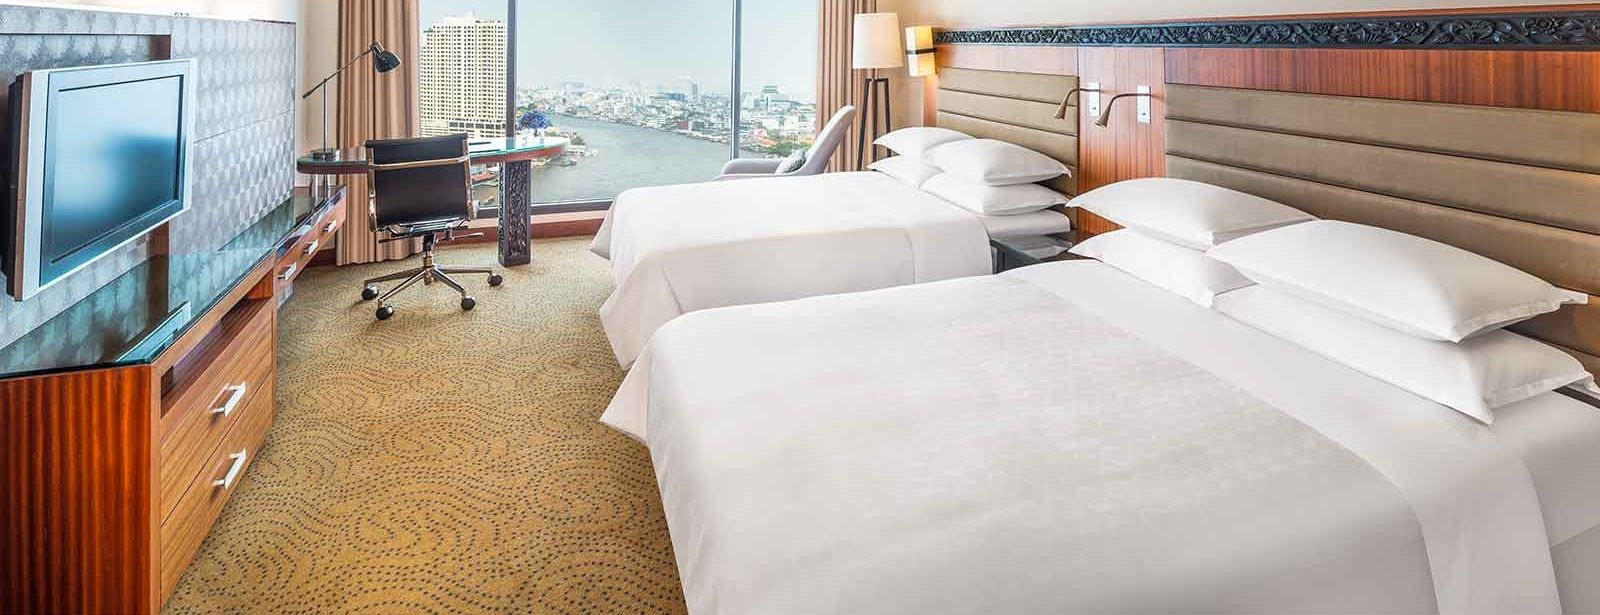 Deluxe Riverview Room - Double - Royal Orchid Sheraton Hotel Bangkok